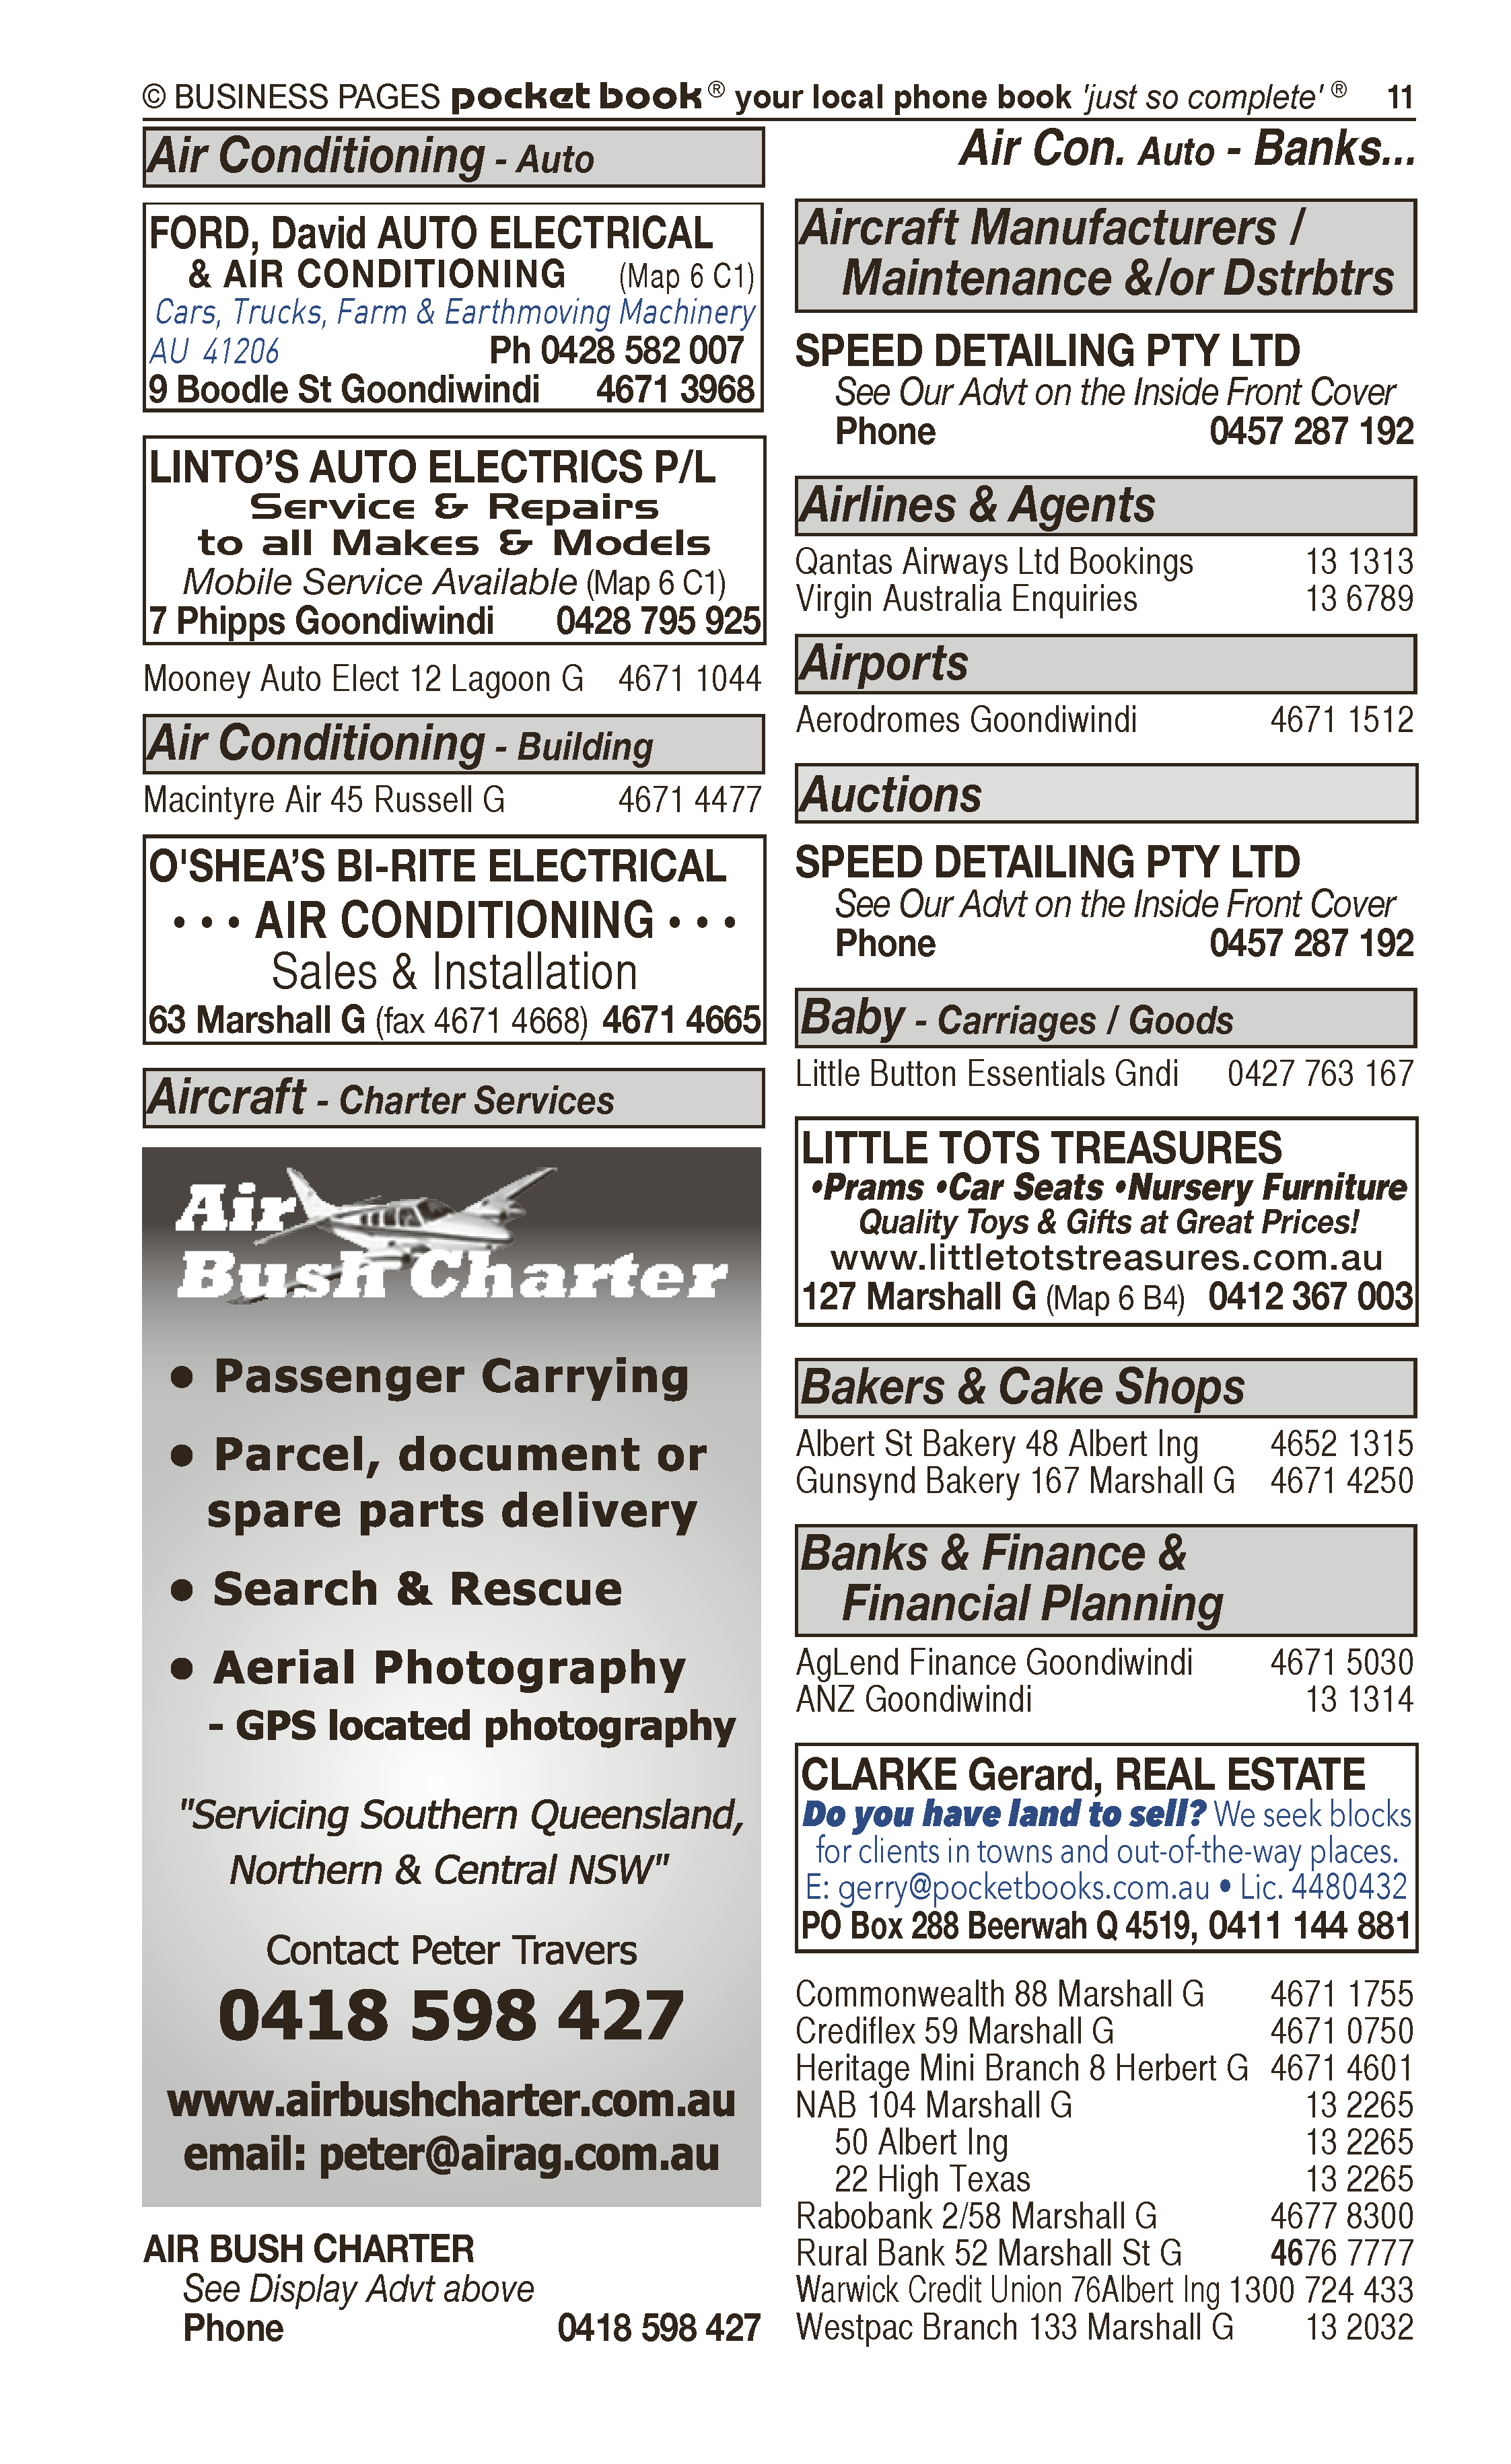 Arthur Agriculture in Goondiwindi QLD - page 11